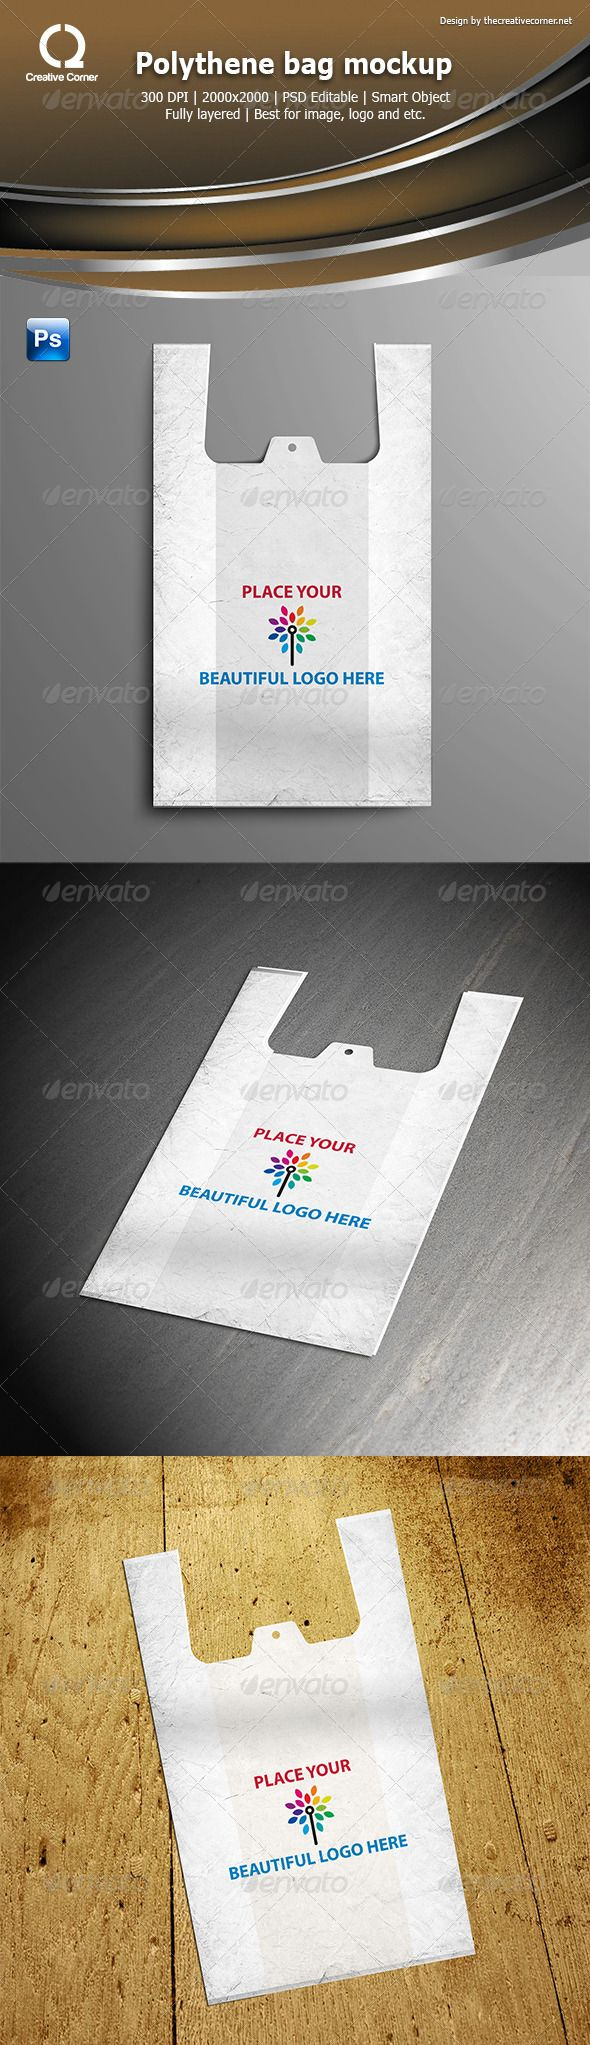 Polythene bag mockup  #GraphicRiver         easy to use smart objects high quality different styles 300dpi easy change background color and gradients  	 Files Included: 3 PSD (2000×2000 Pixels)  	 ——-———-———-——-——  	 How To Use : First Open PSD File In Photoshop , find place holder layer and then Dubble Click On The Place Holder Layer , Now From File > Open , Select Your Image And Click On The Open . Now File > Save And Then Click One The Close > Preview     Created: 1June13…